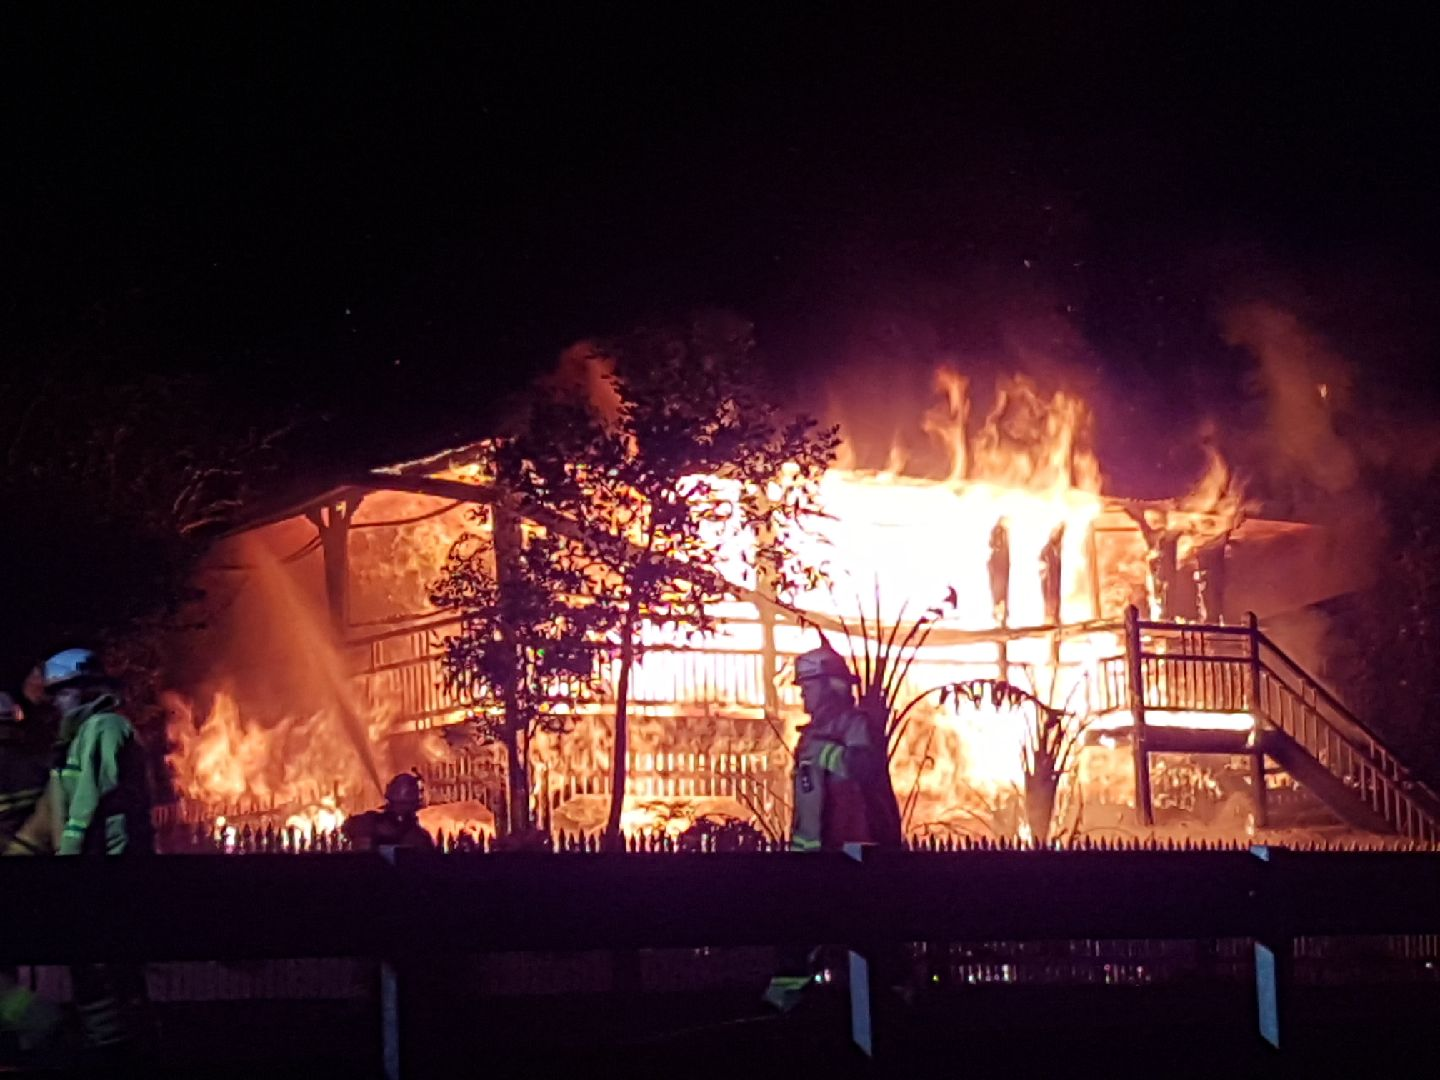 A neighbour took this photo of the Chermside Rd fire.